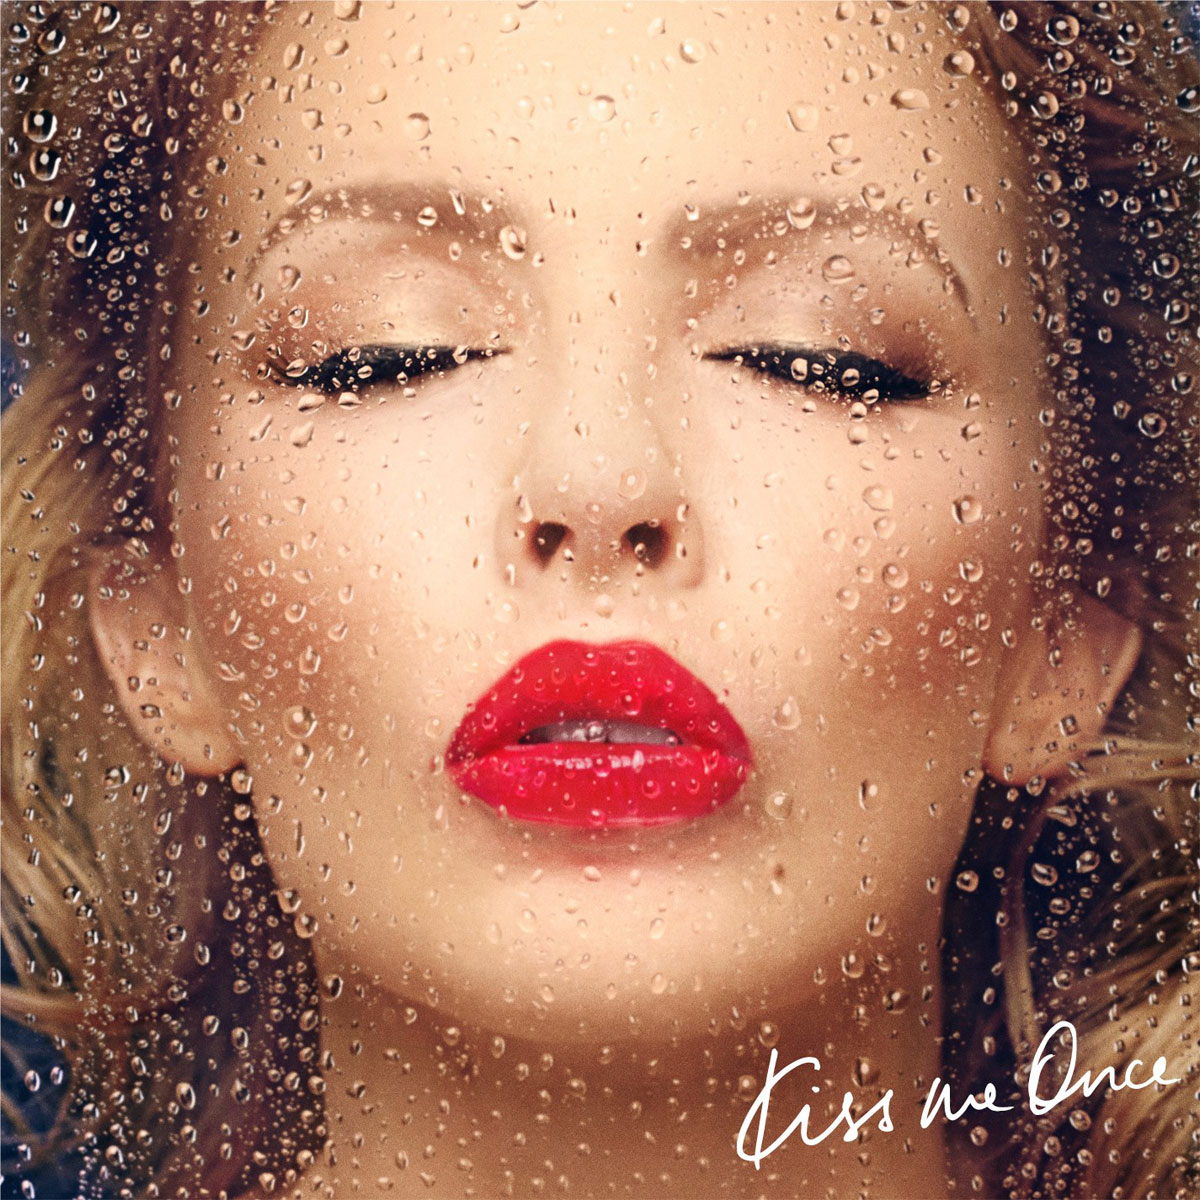 Kylie Minogue: Kiss me once - portada